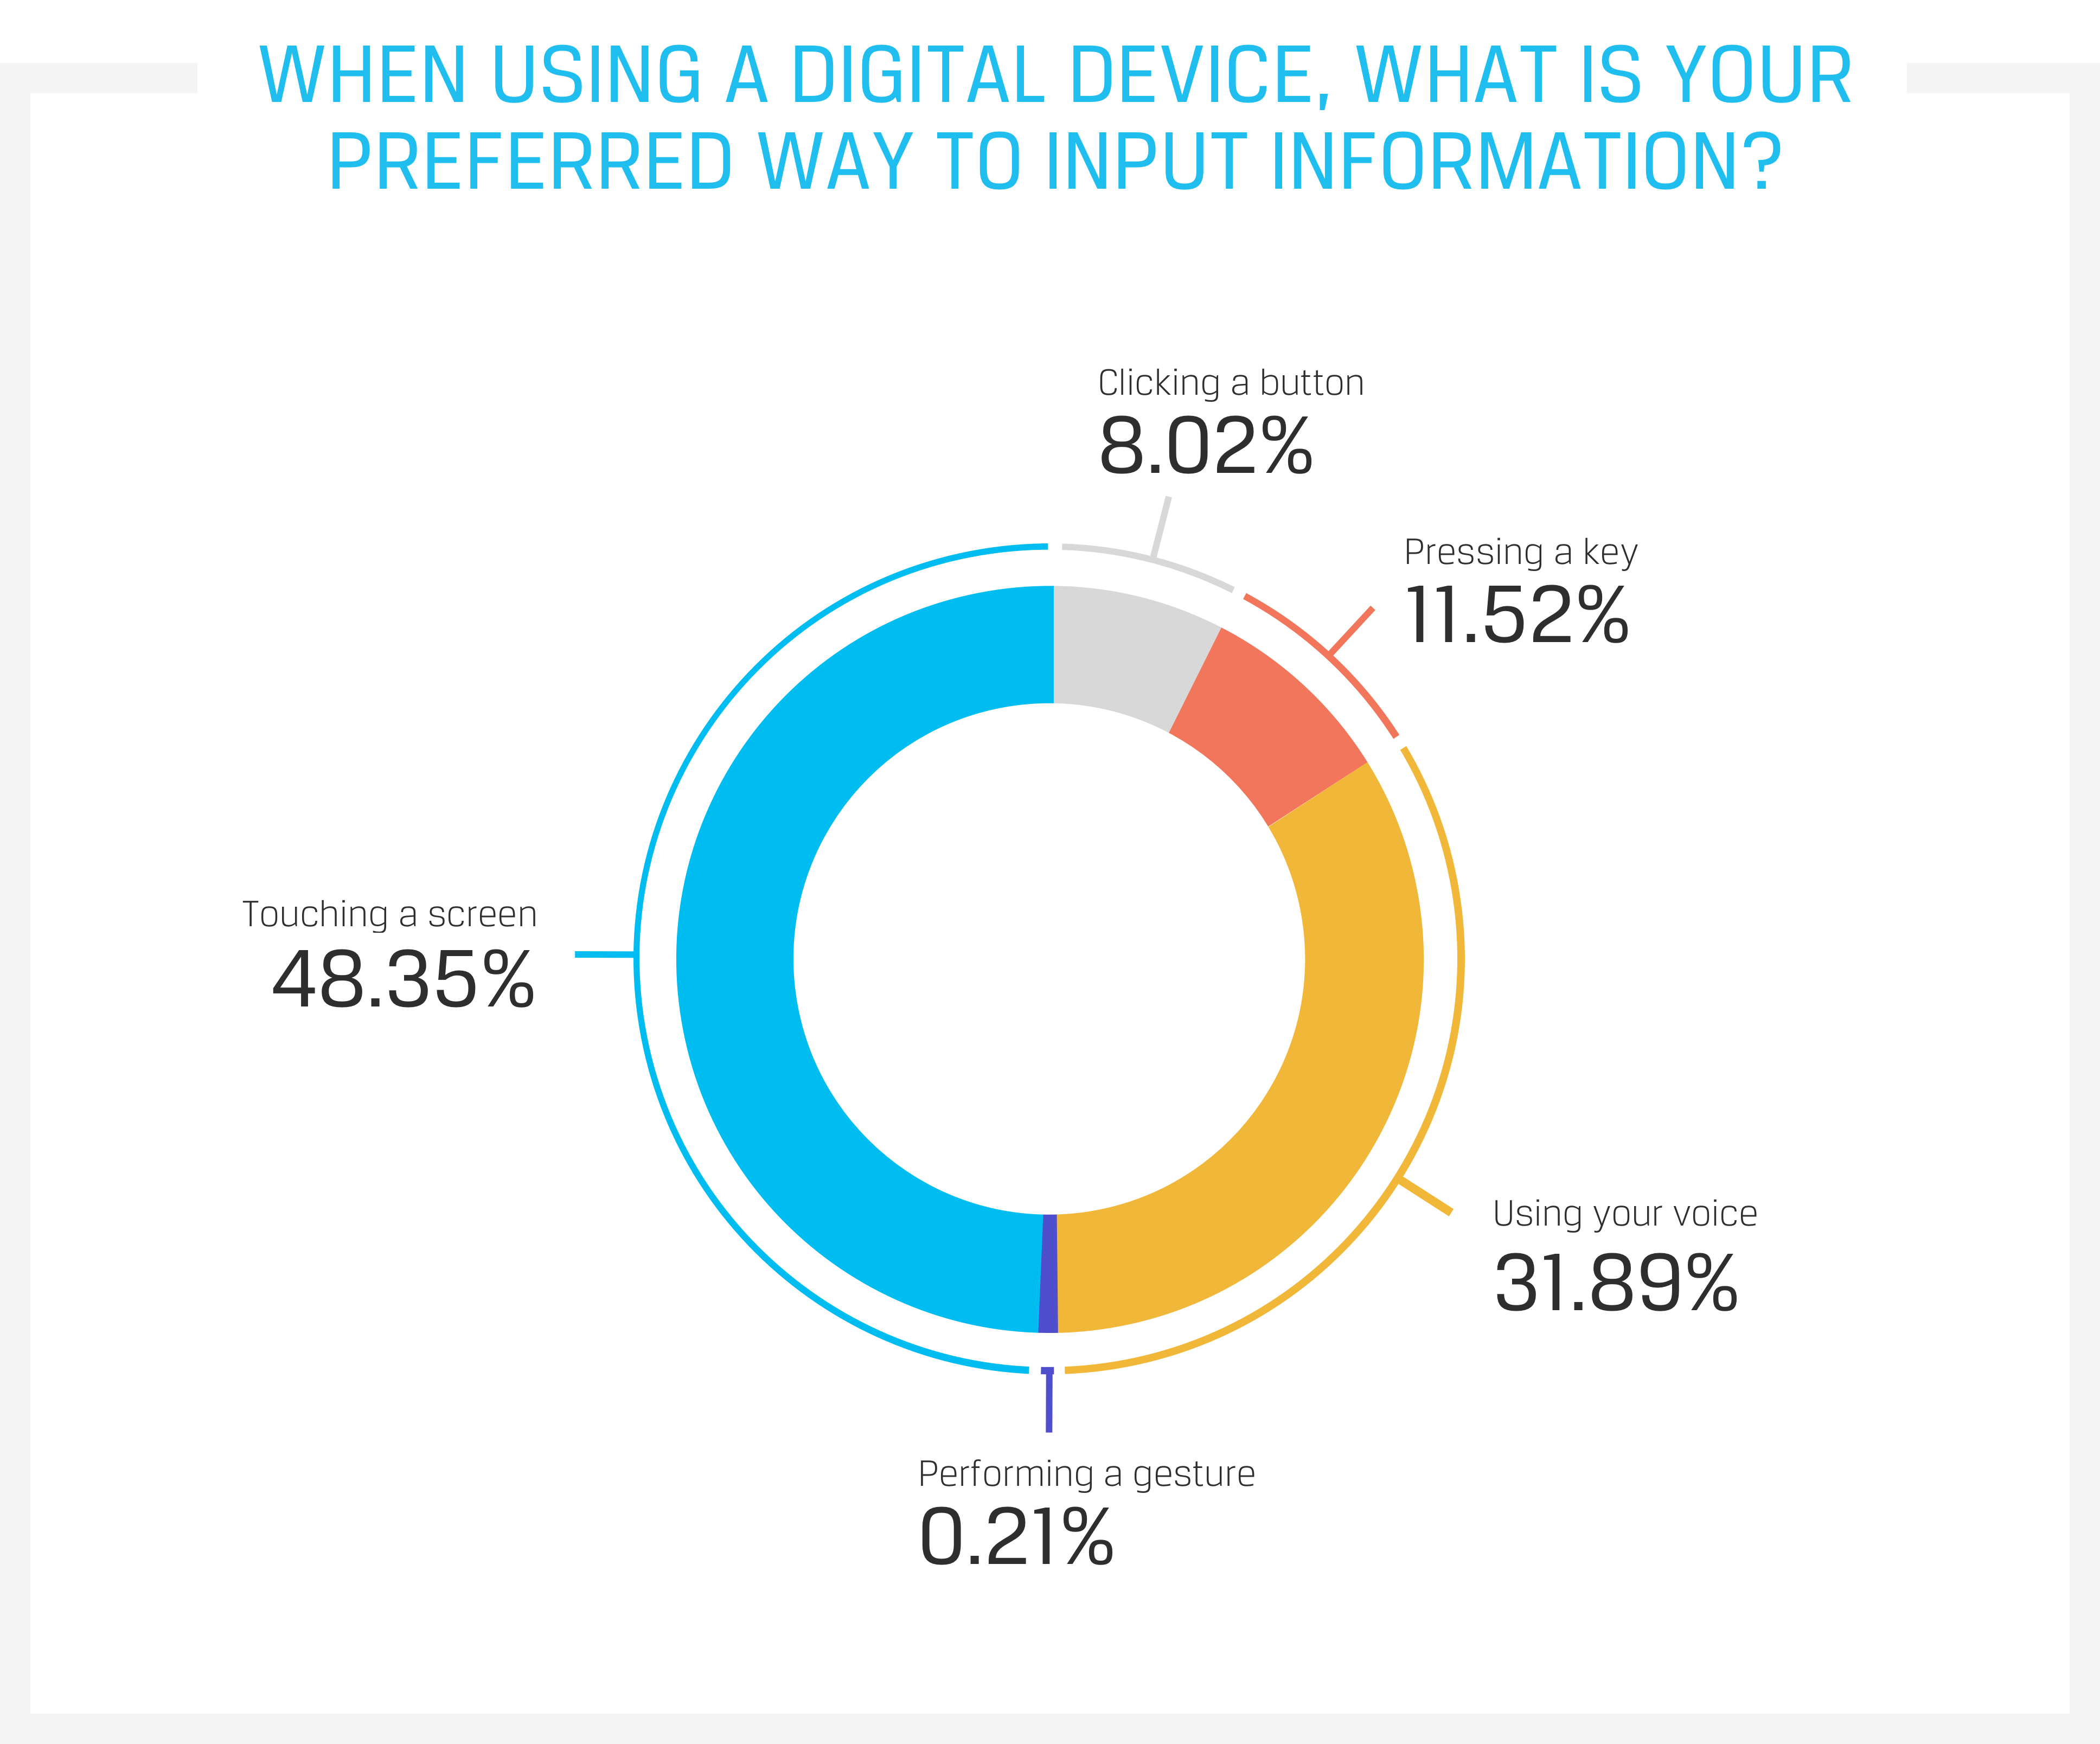 When using a digital device, what is your preferred way to input information?